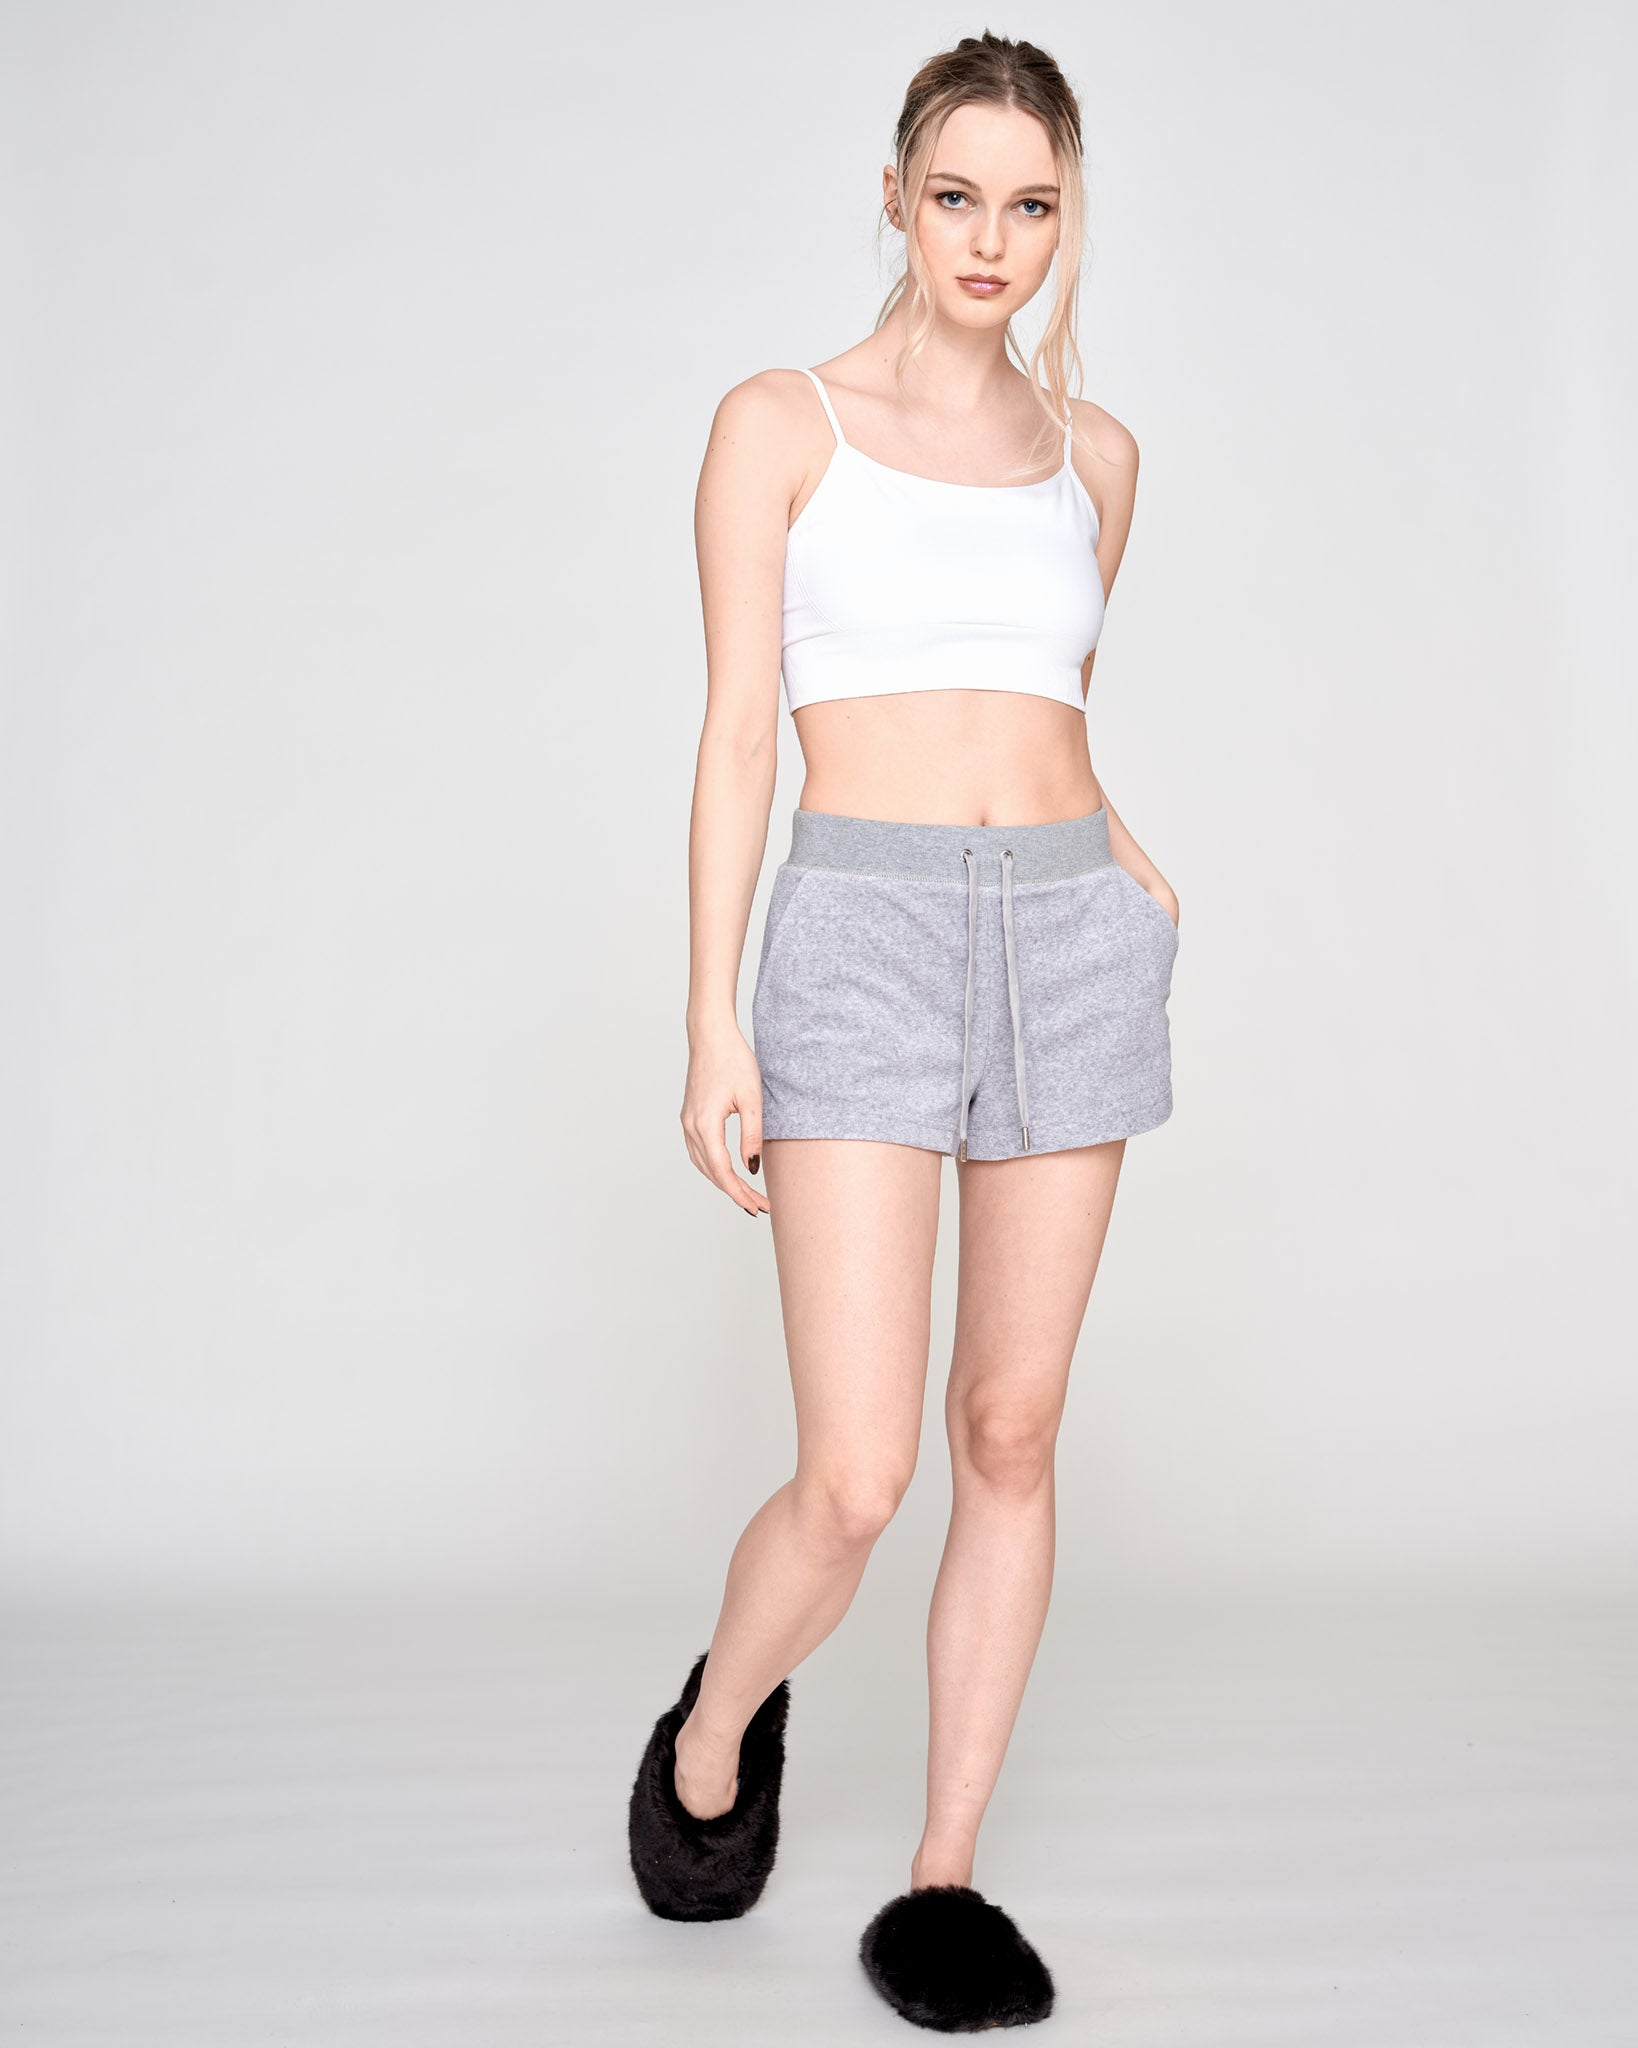 Eve Terry Towelling Shorts Light Grey Marl - Juicy Couture Scandinavia